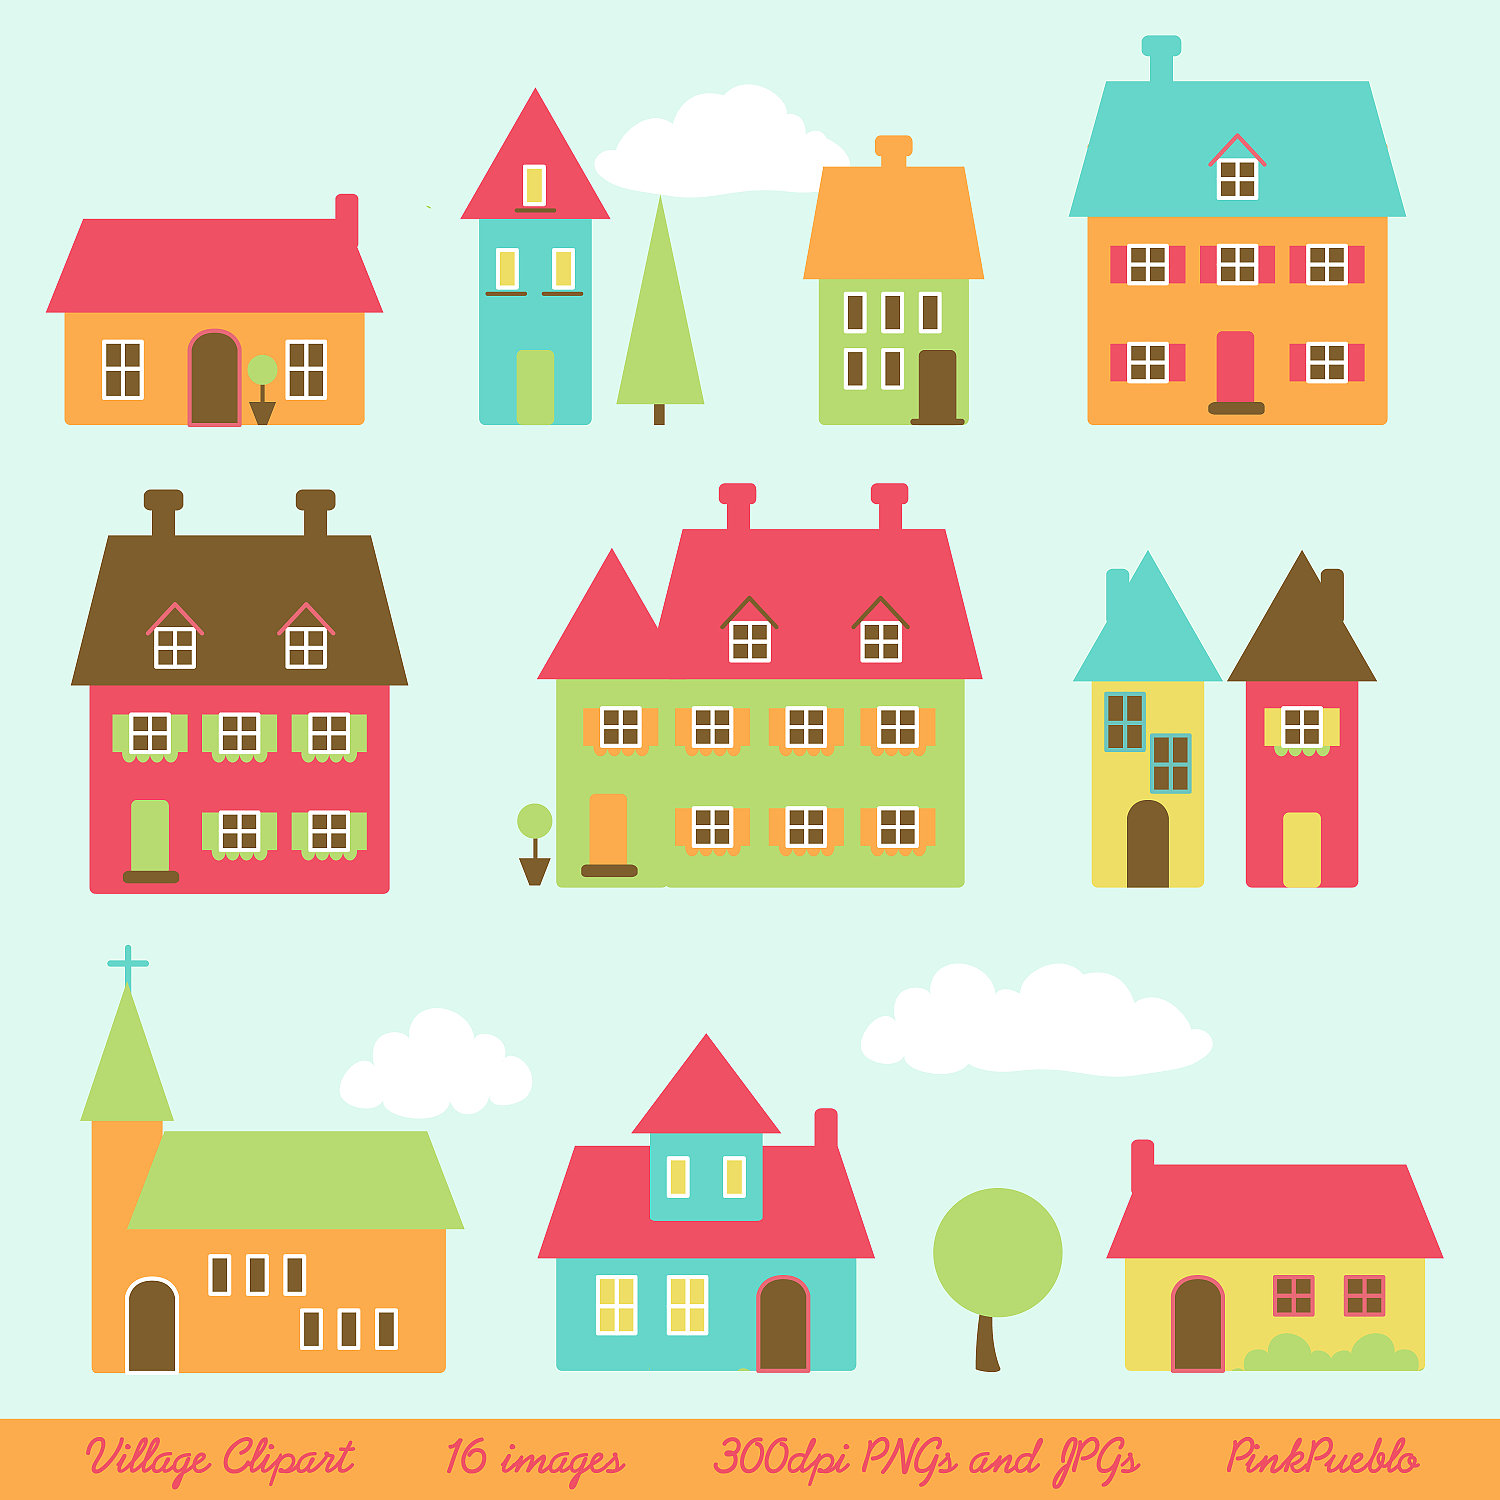 Village clipart #3, Download drawings